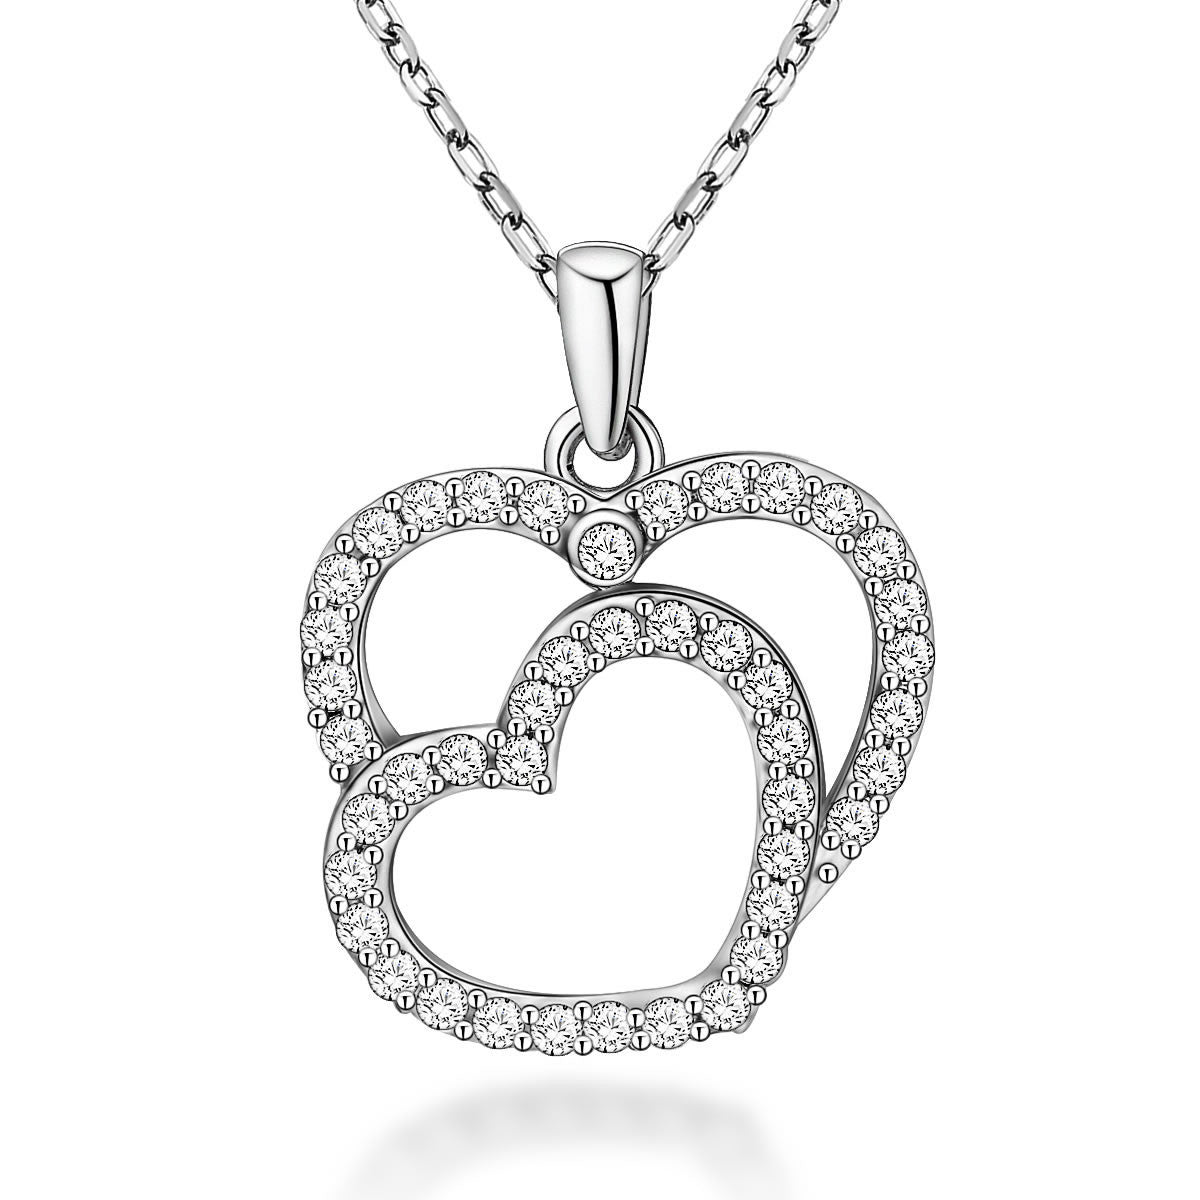 Special Heart-shaped Design 925 Sterling Silver Pendant Necklace E061755001